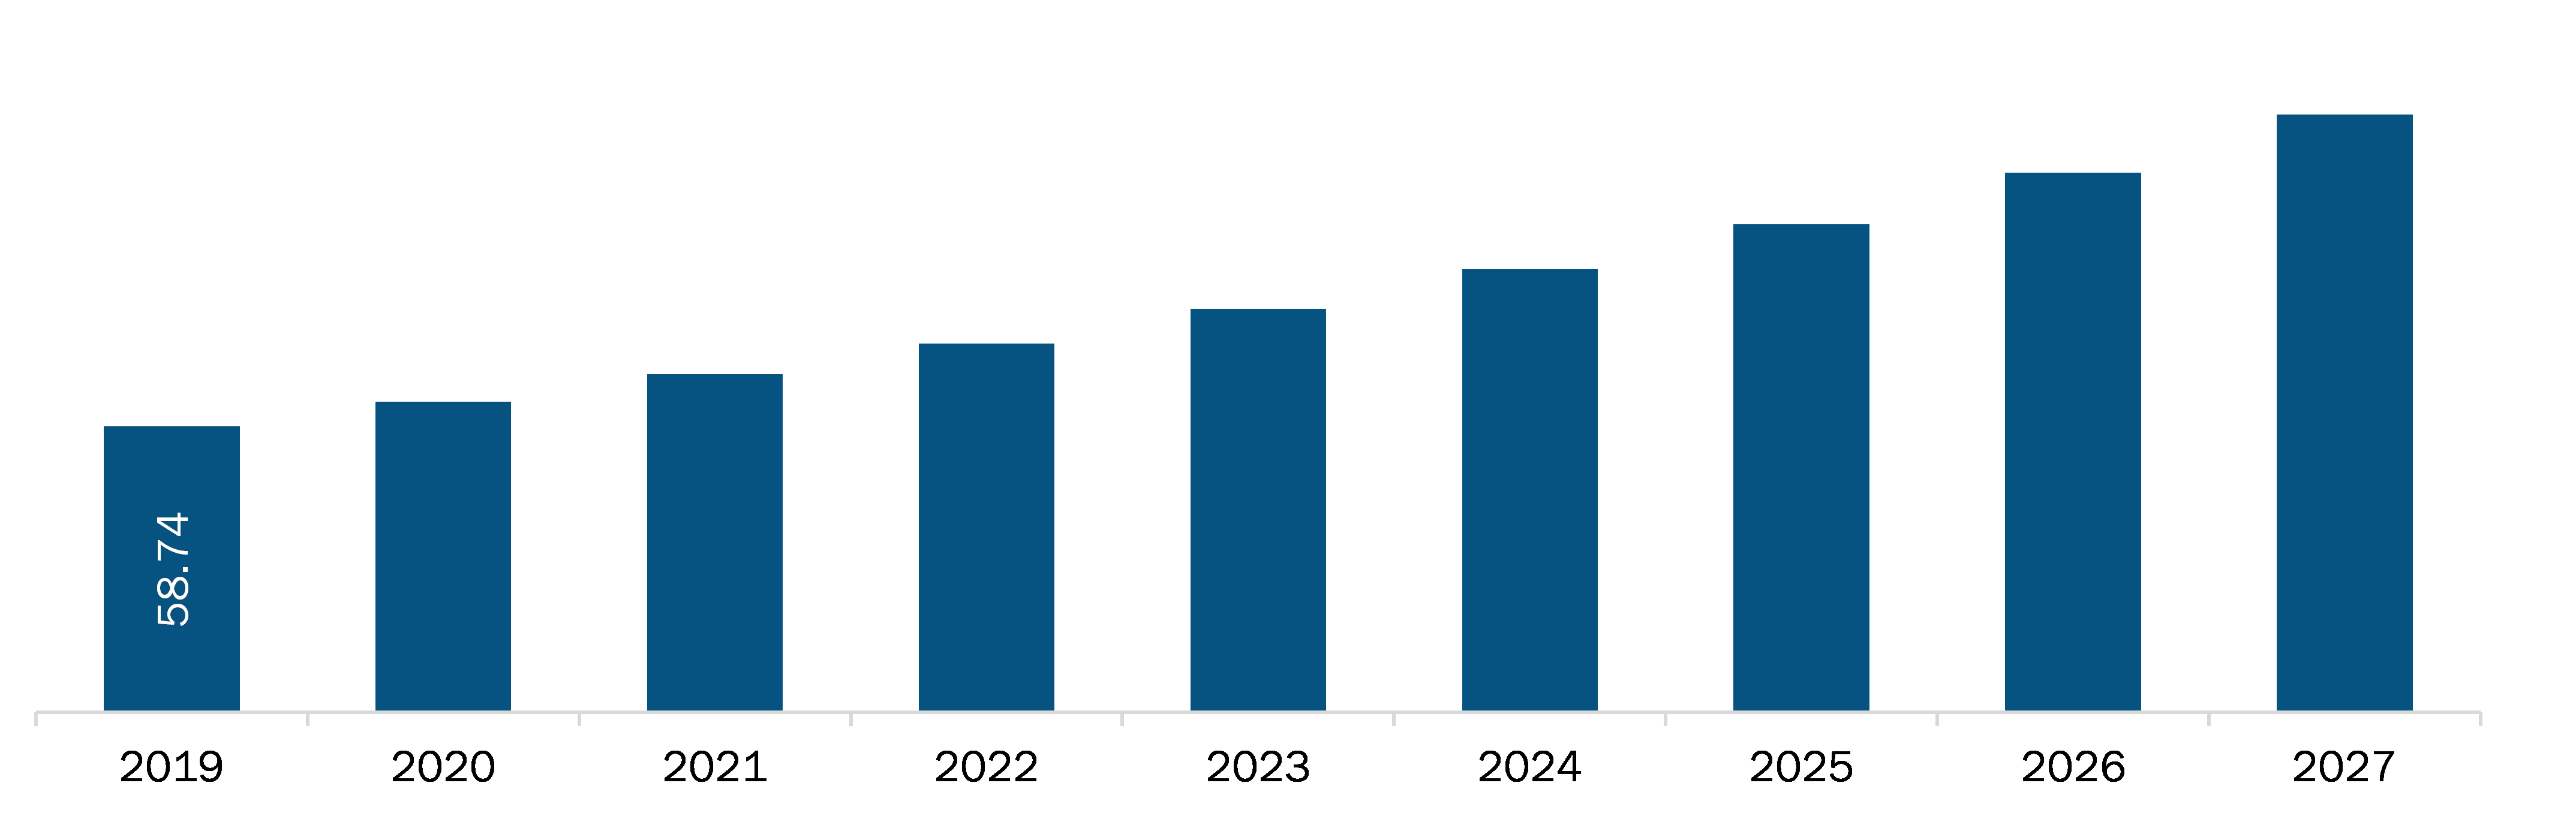 Middle East & Africa Sinus Dilation Market Revenue and Forecast to 2027 (US$ Mn)